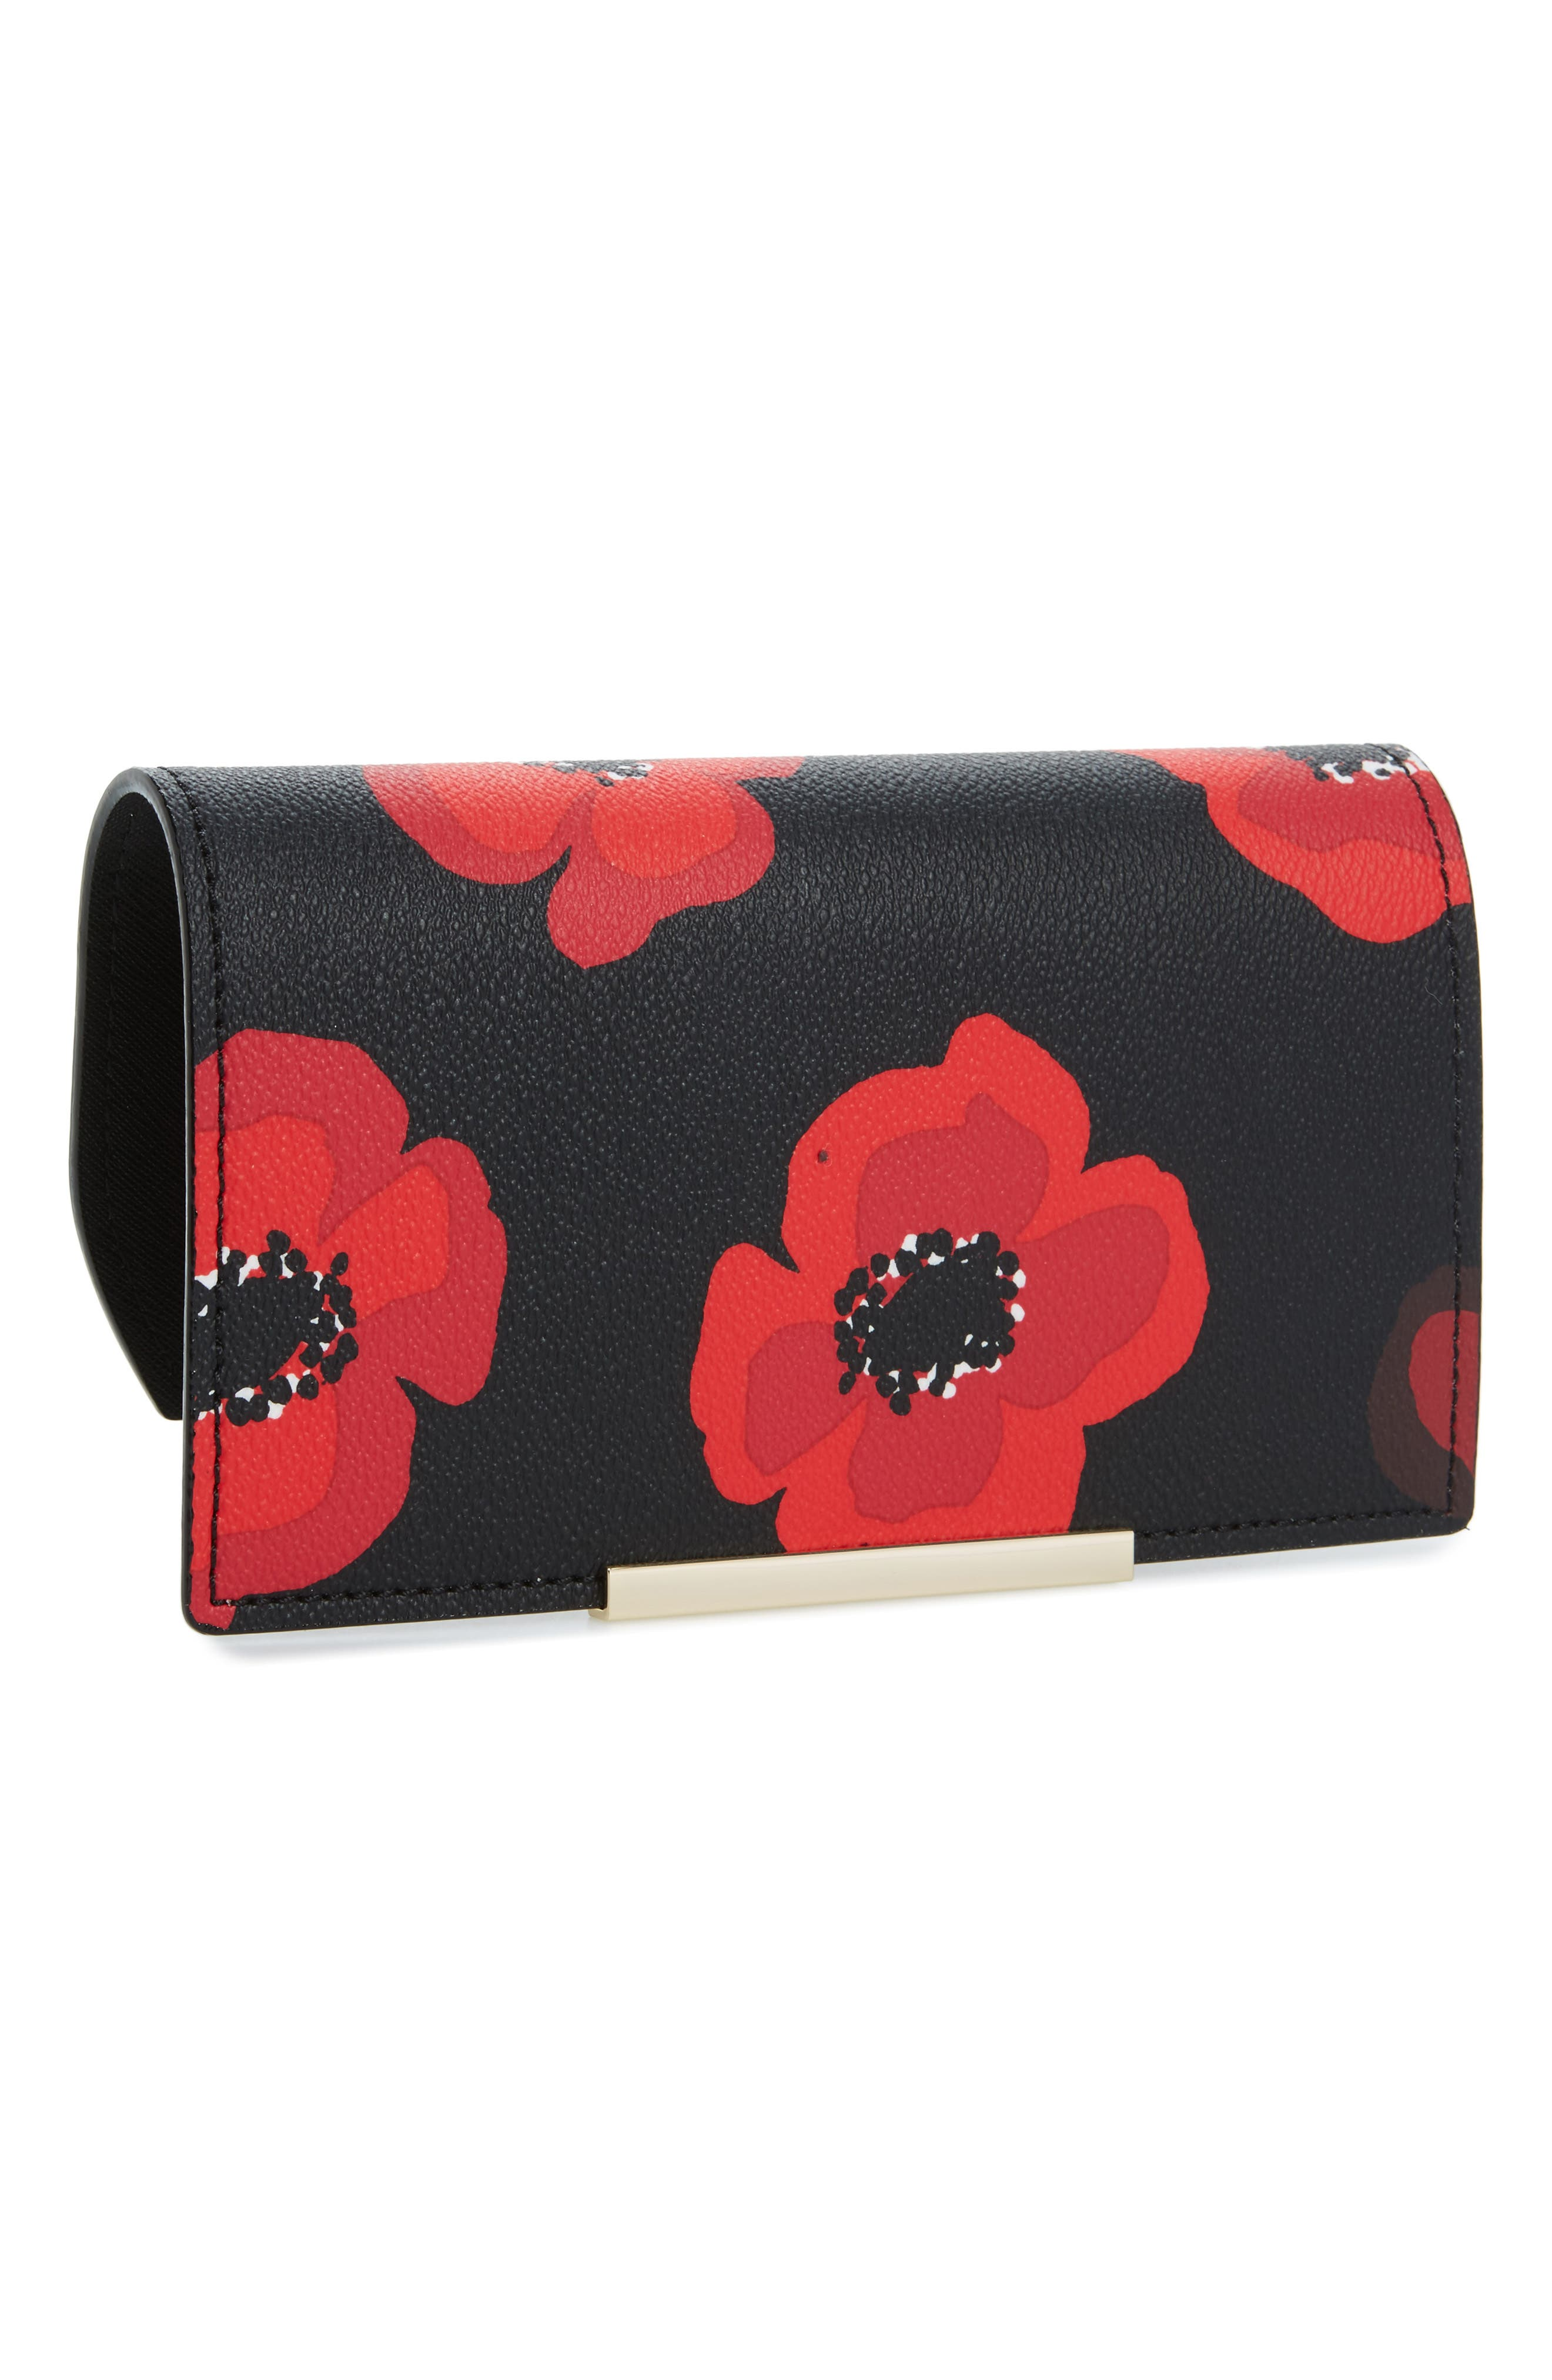 make it mine poppy snap-on accent flap,                             Main thumbnail 1, color,                             001